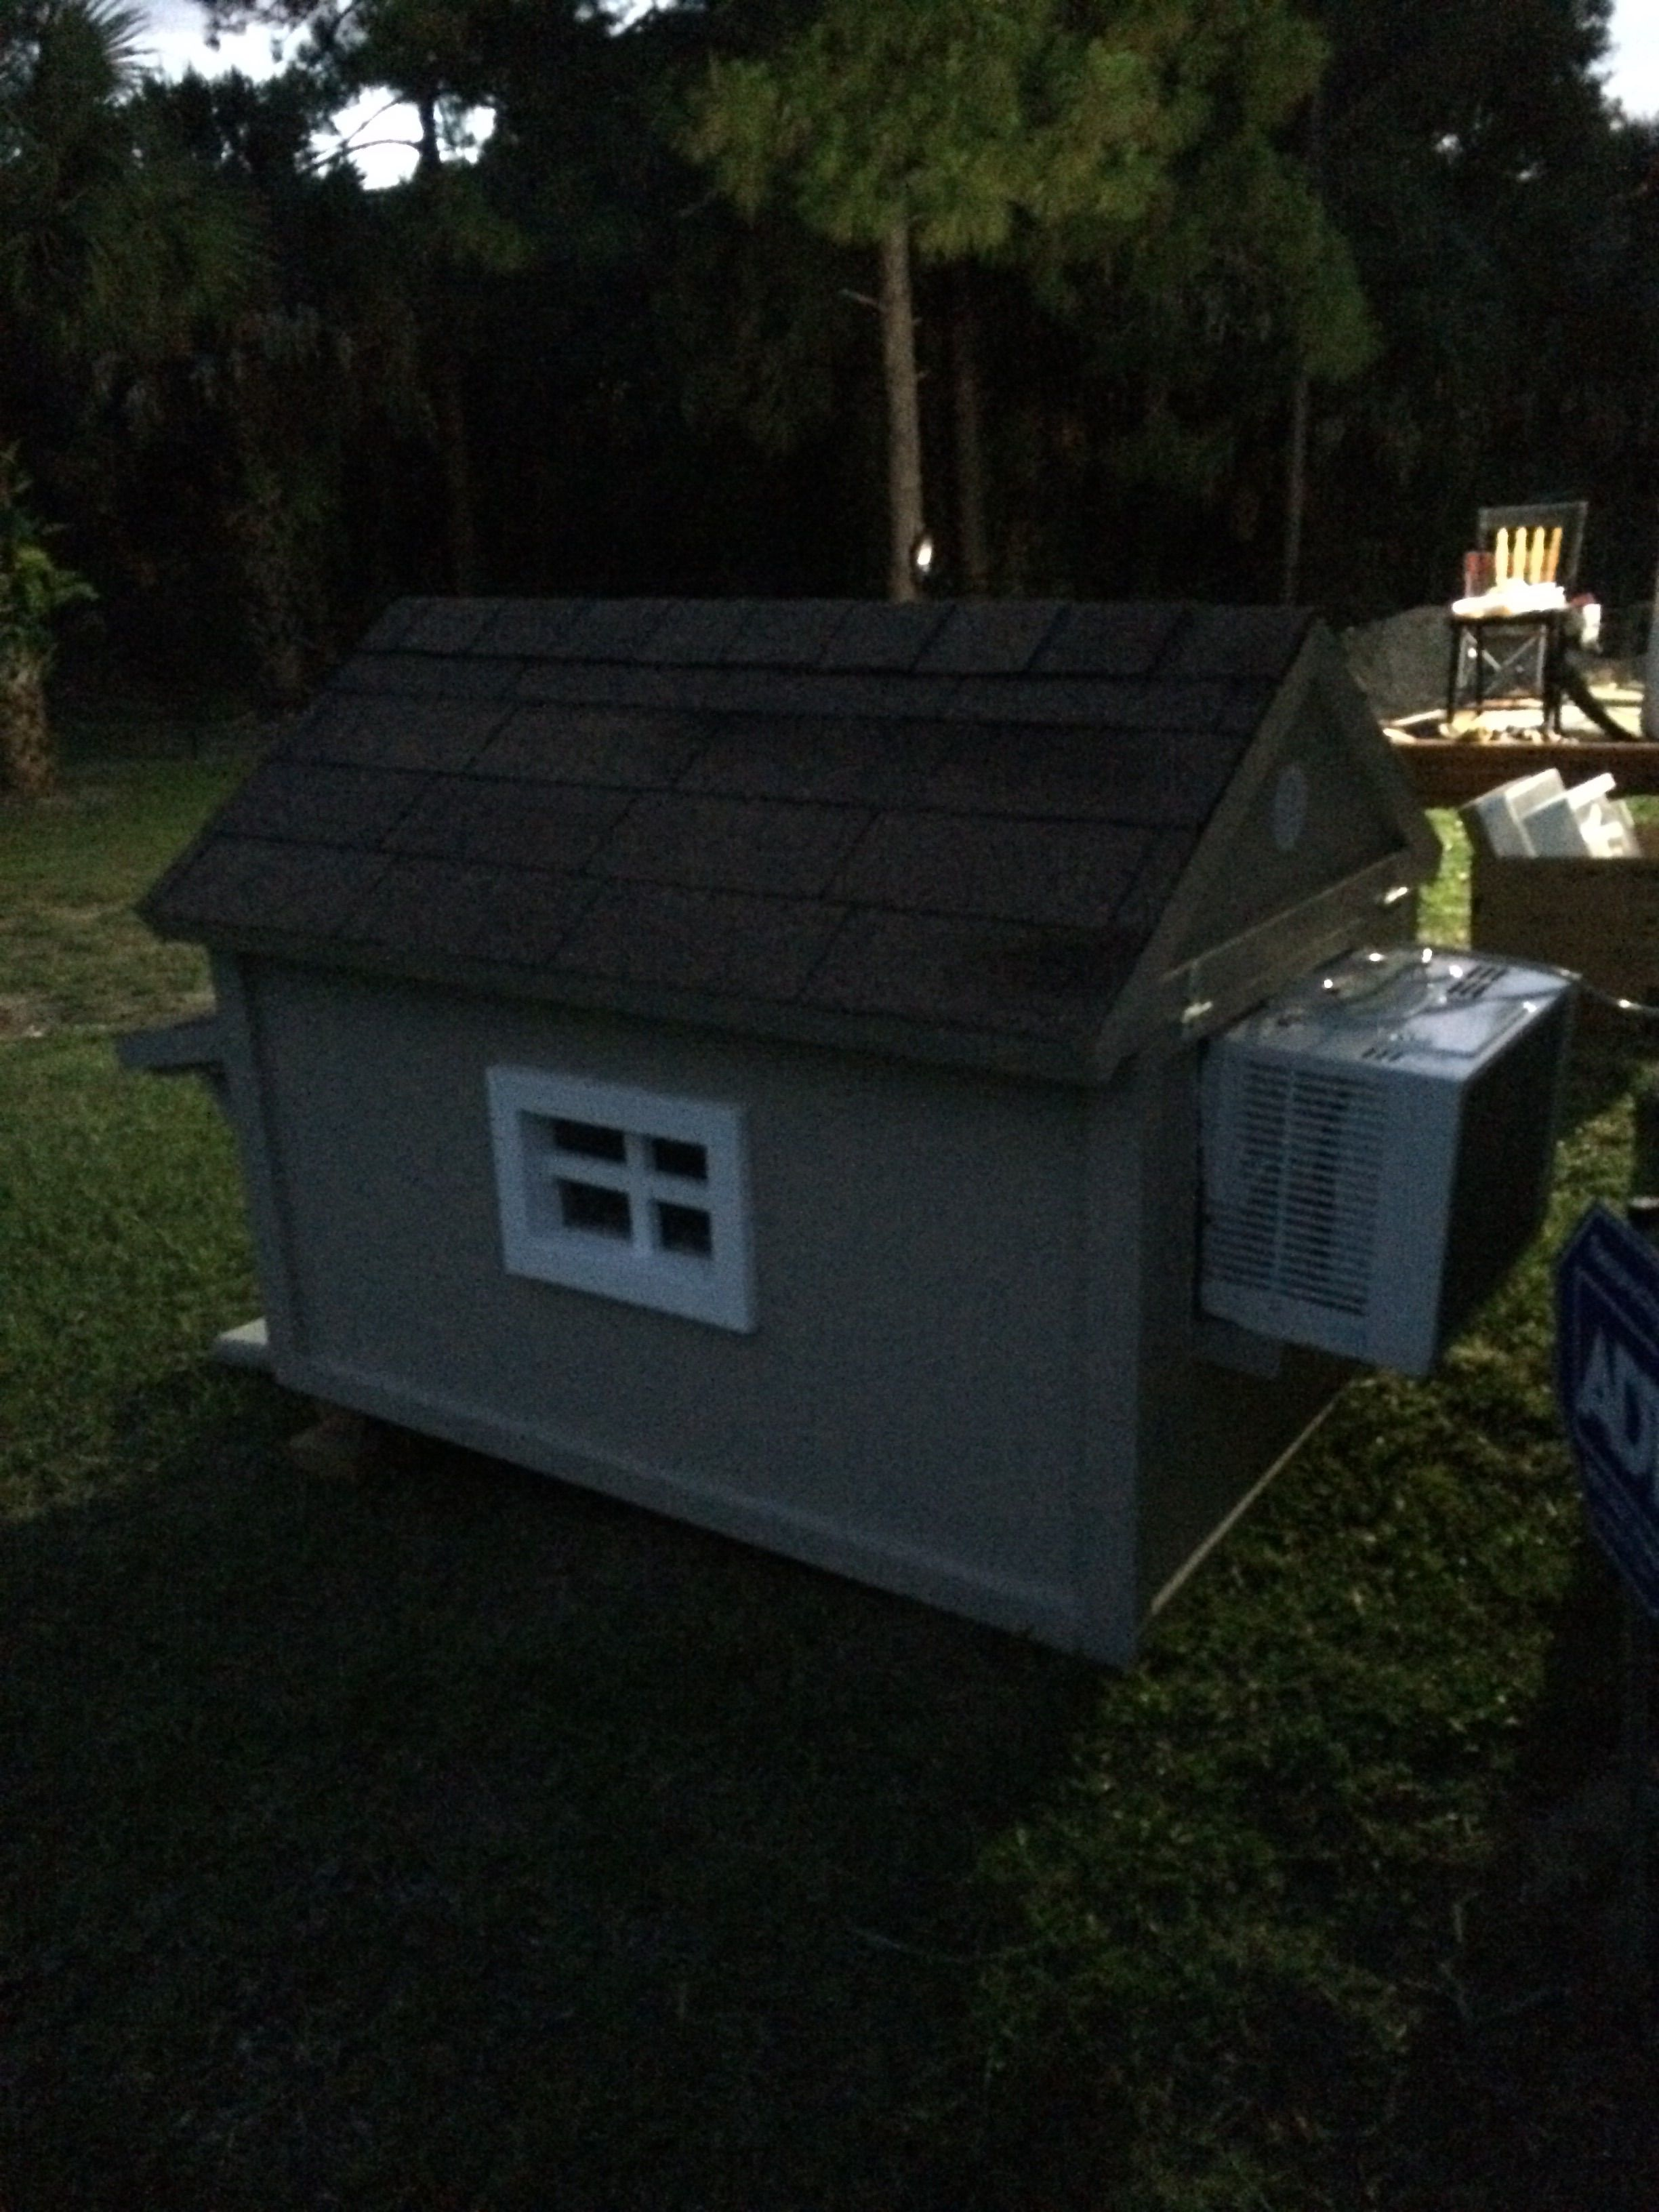 Ac dog house to my jack russell Air conditioned dog house